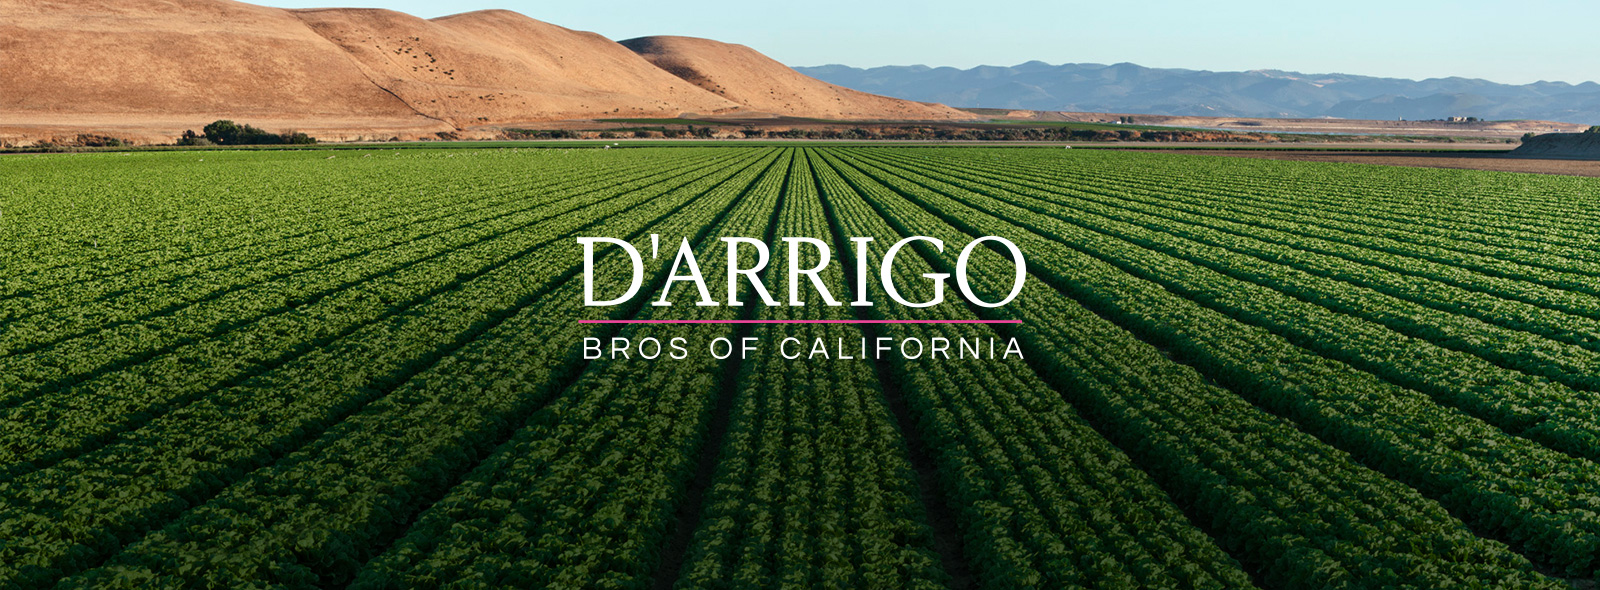 D'Arrigo Bros Logo over Crop Rows